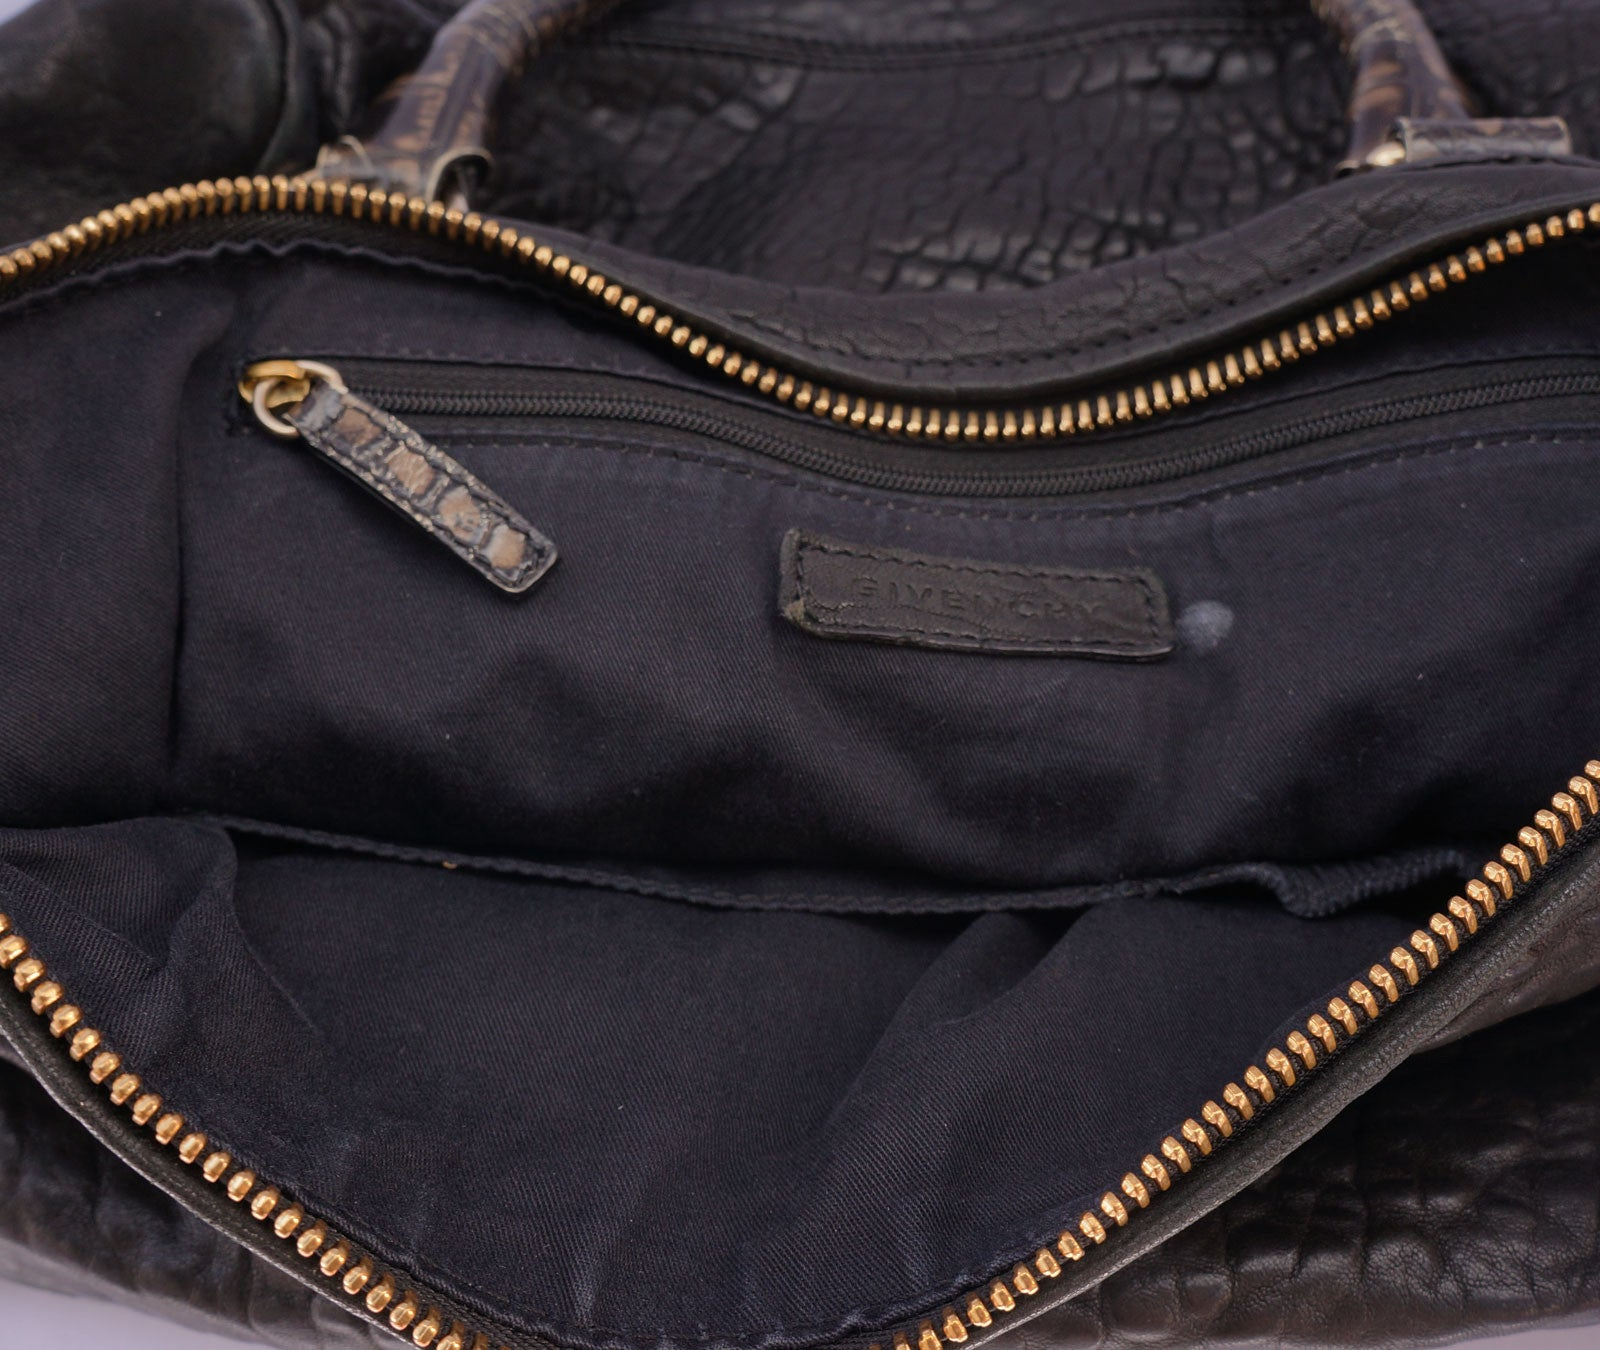 dffd0ba6958 ... GIVENCHY LARGE PANDORA SATCHEL on Leef luxury authentic designer resale  consignment